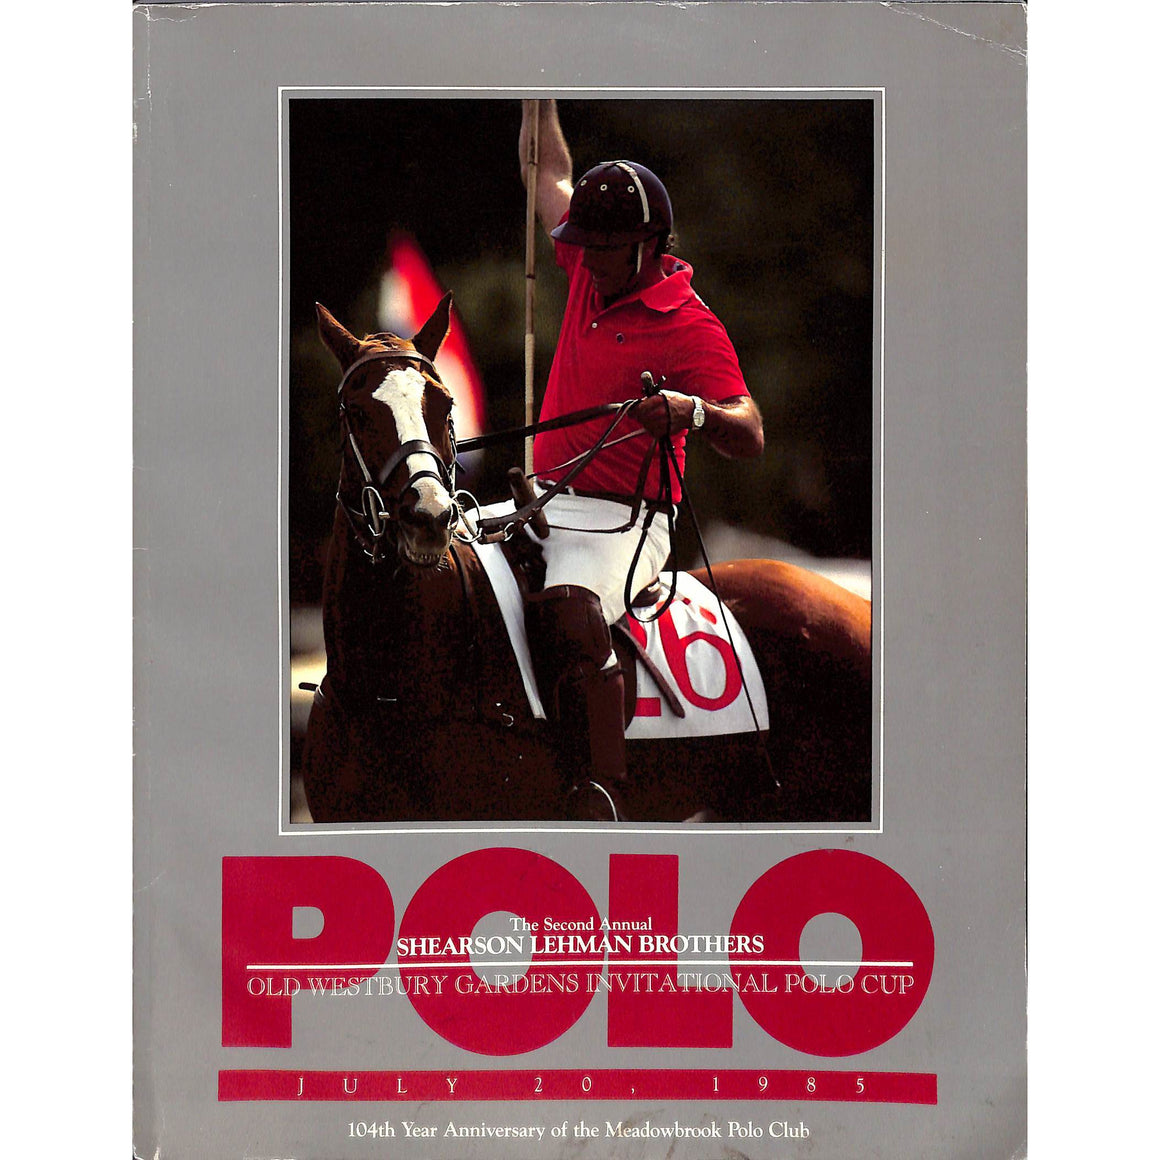 Polo Magazine July 20, 1985